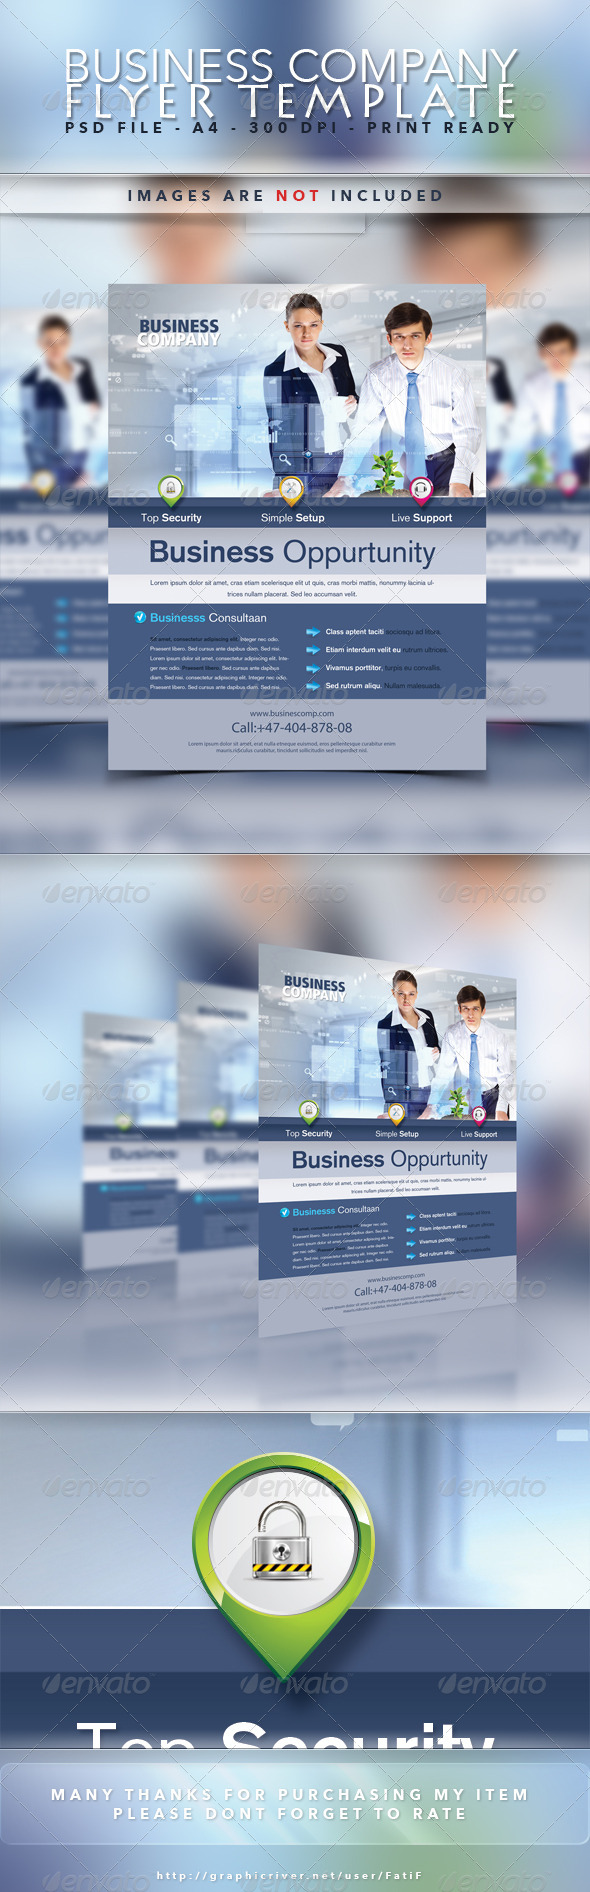 GraphicRiver Business Company Flyer Template 7302747